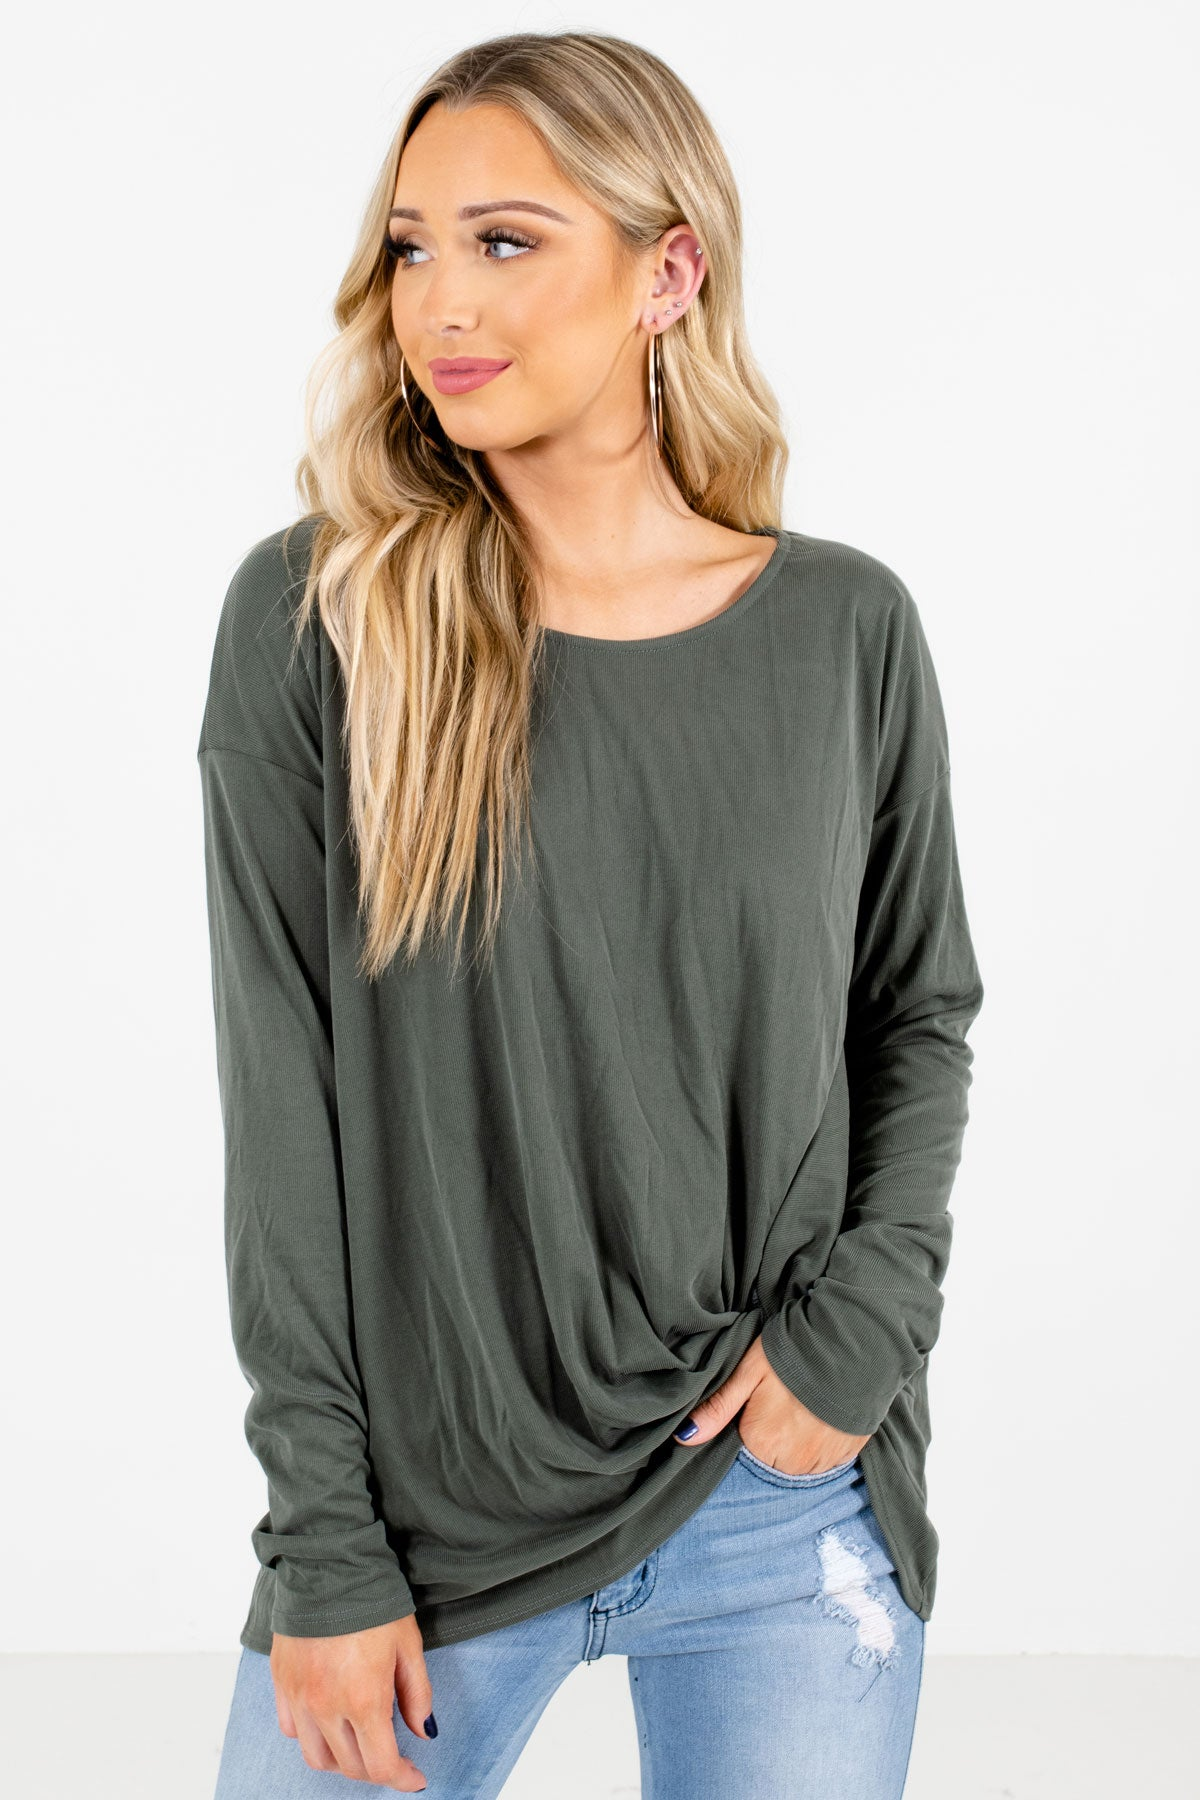 Green Infinity Knot Detail Boutique Tops for Women